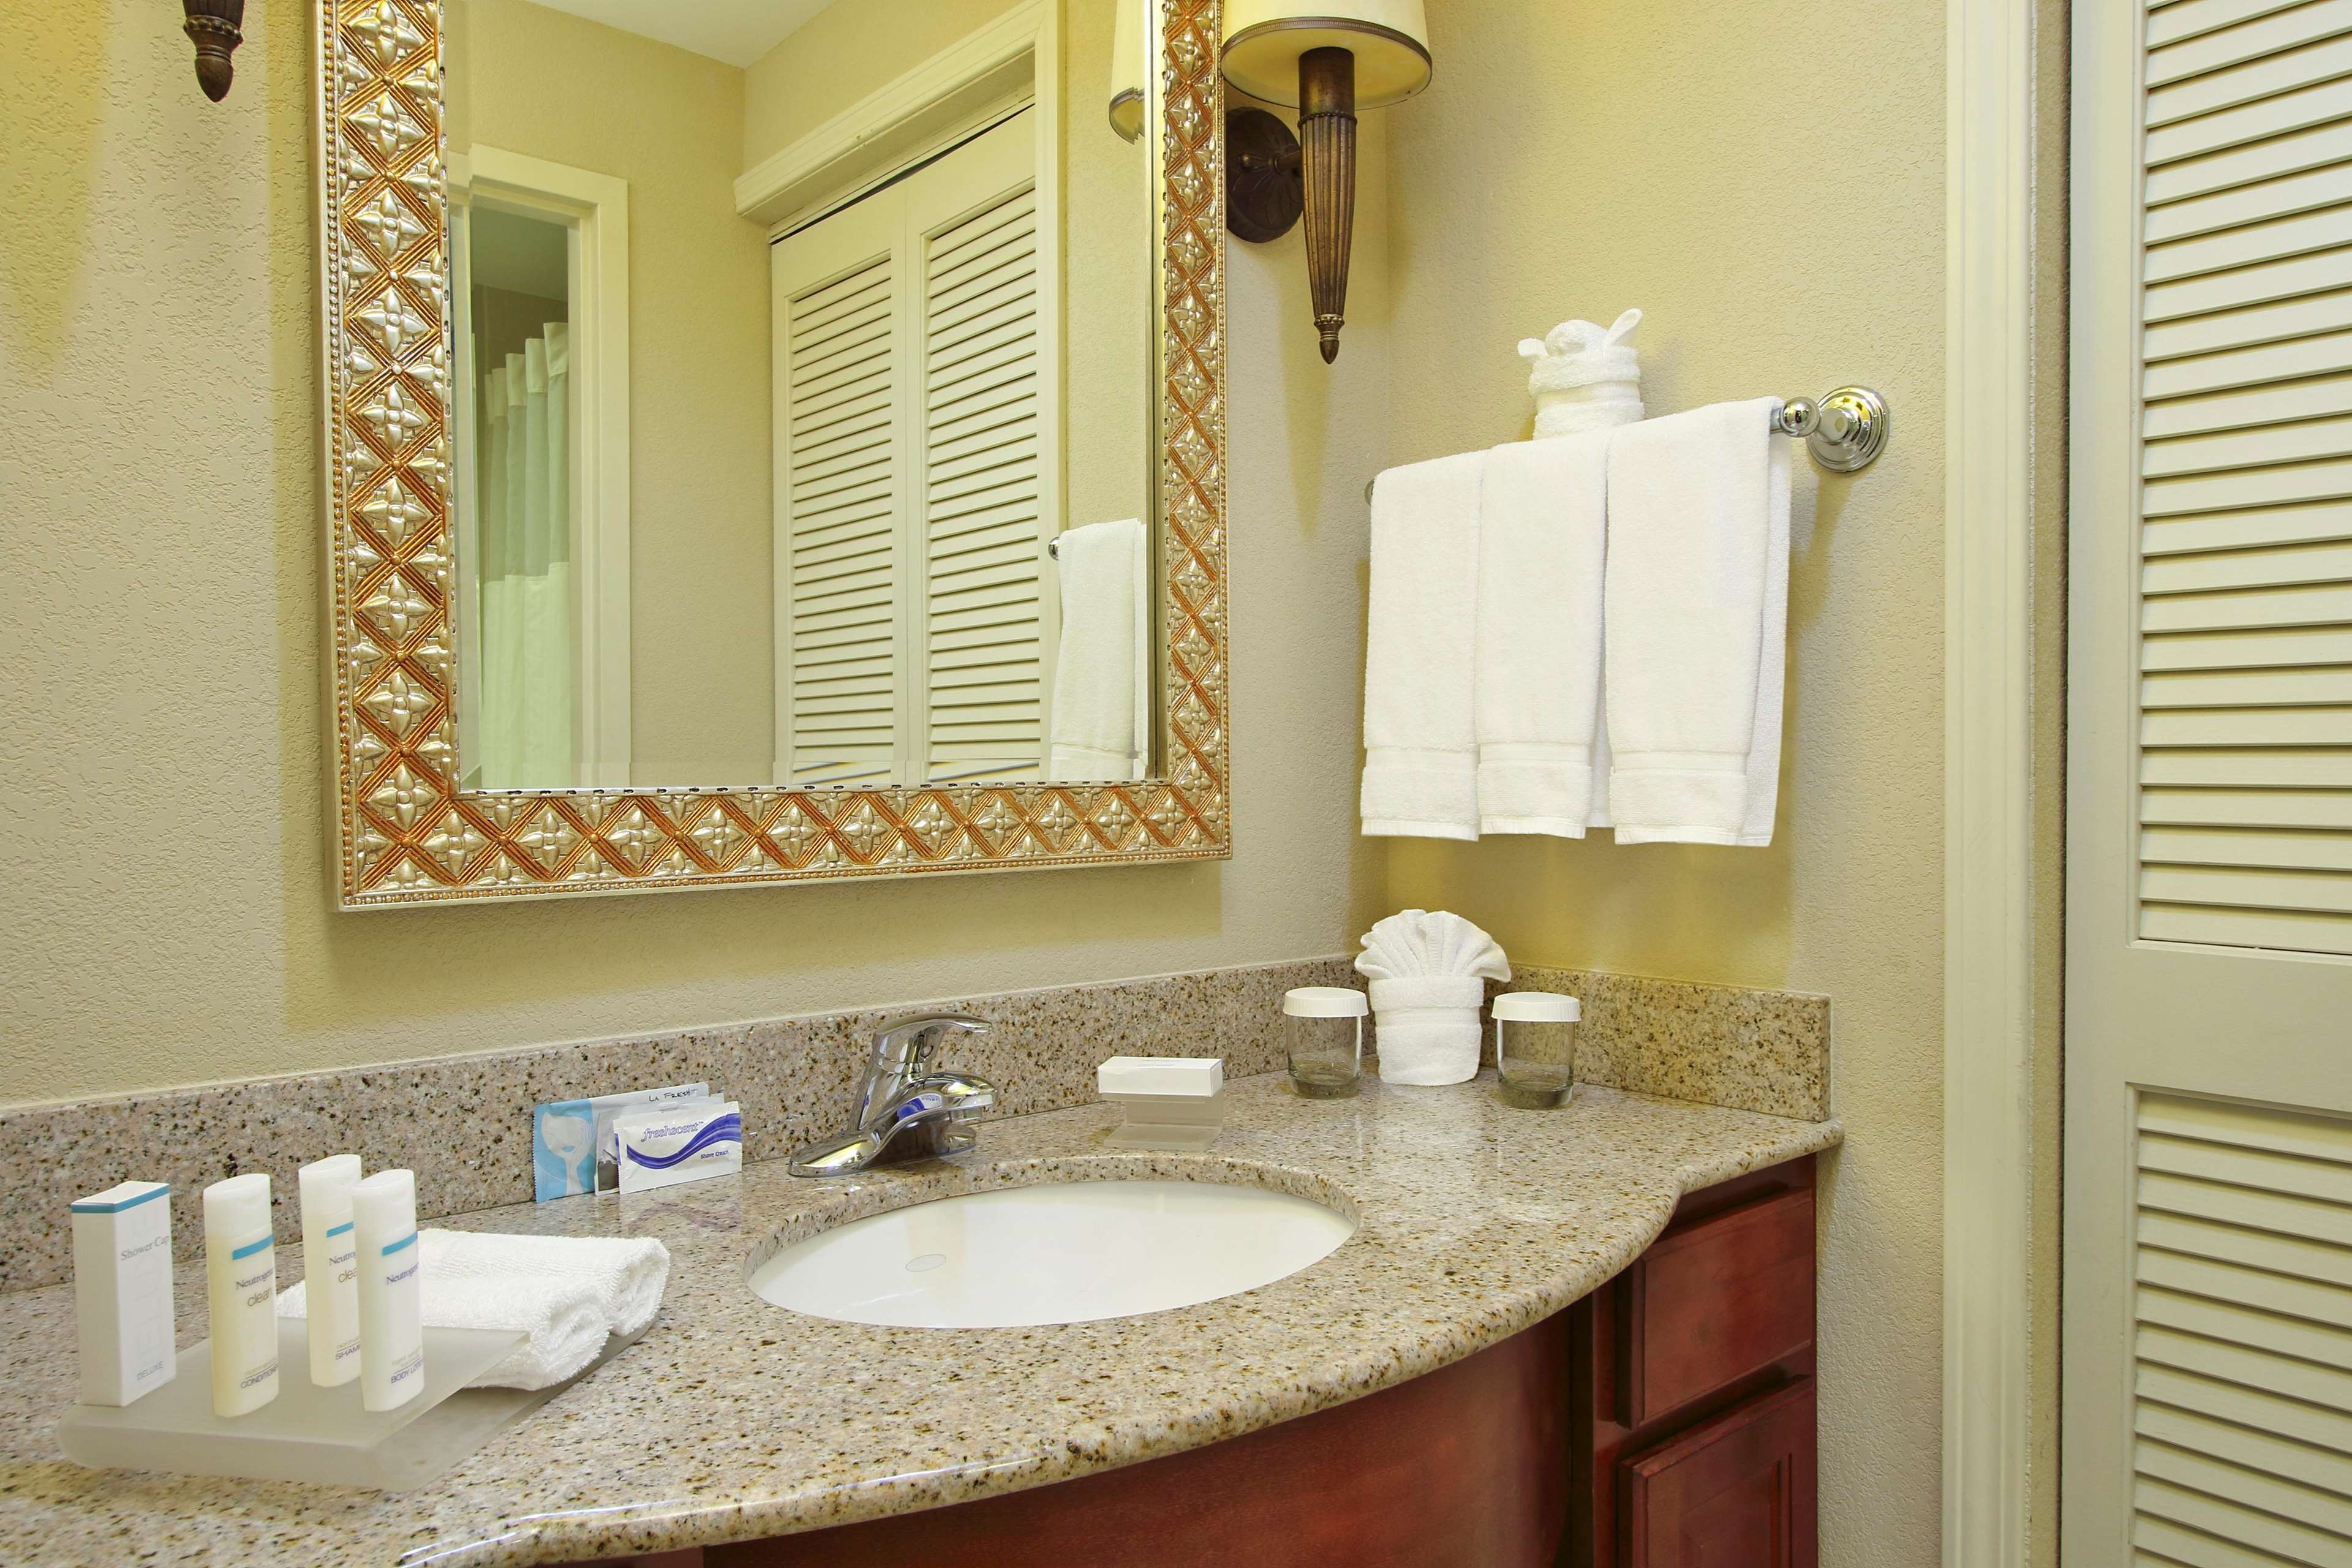 Homewood Suites by Hilton Miami - Airport West image 24